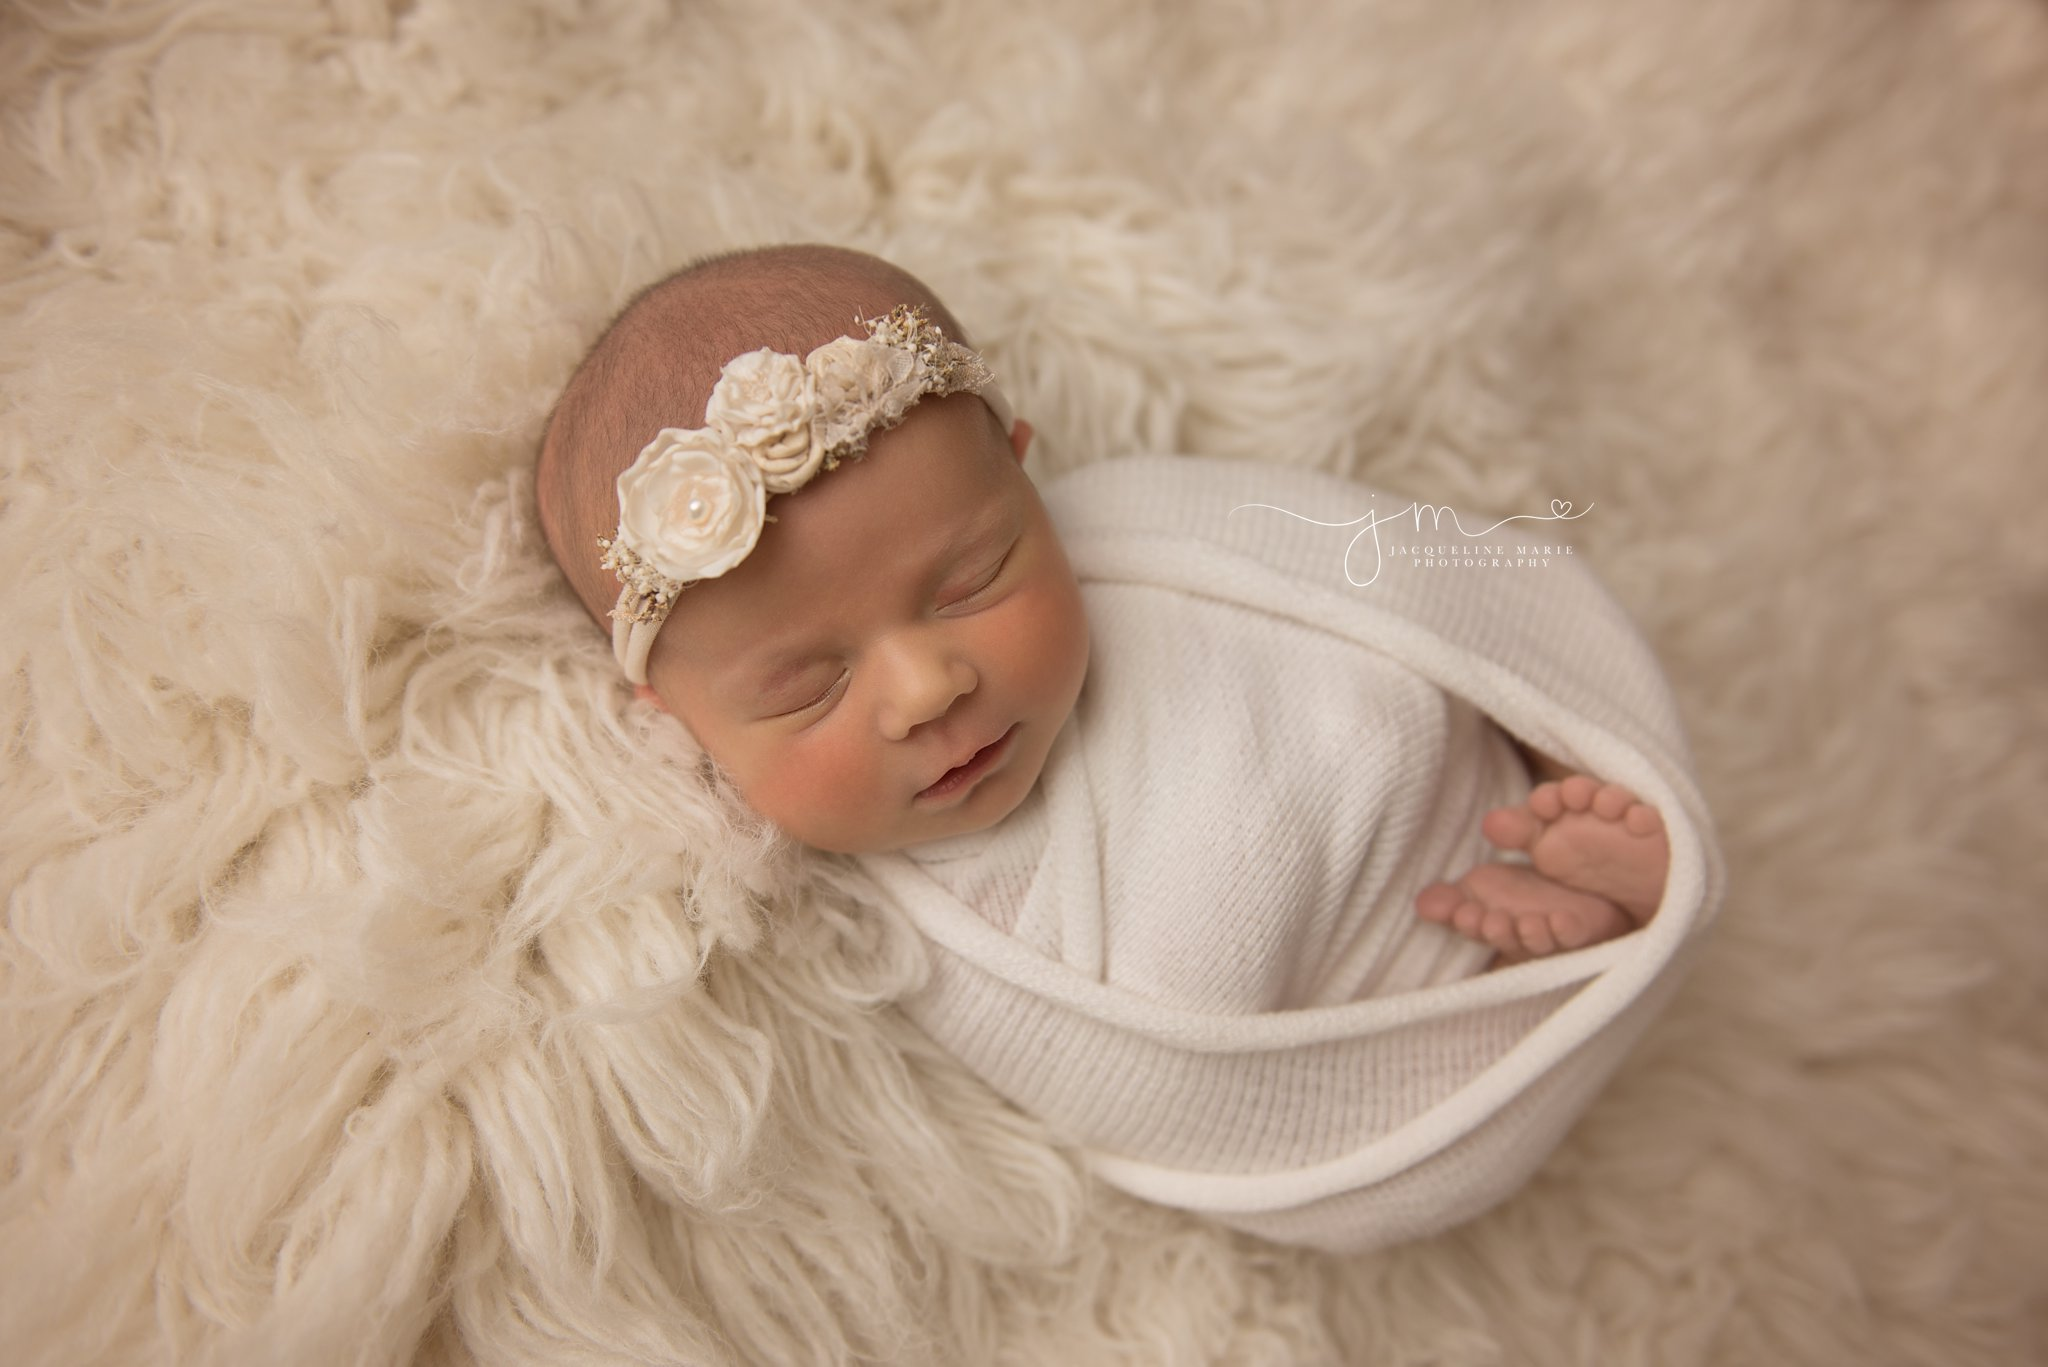 1 week old newborn baby girl swaddled in cream wrap on cream fur rug for newborn photography pictures in columbus ohio